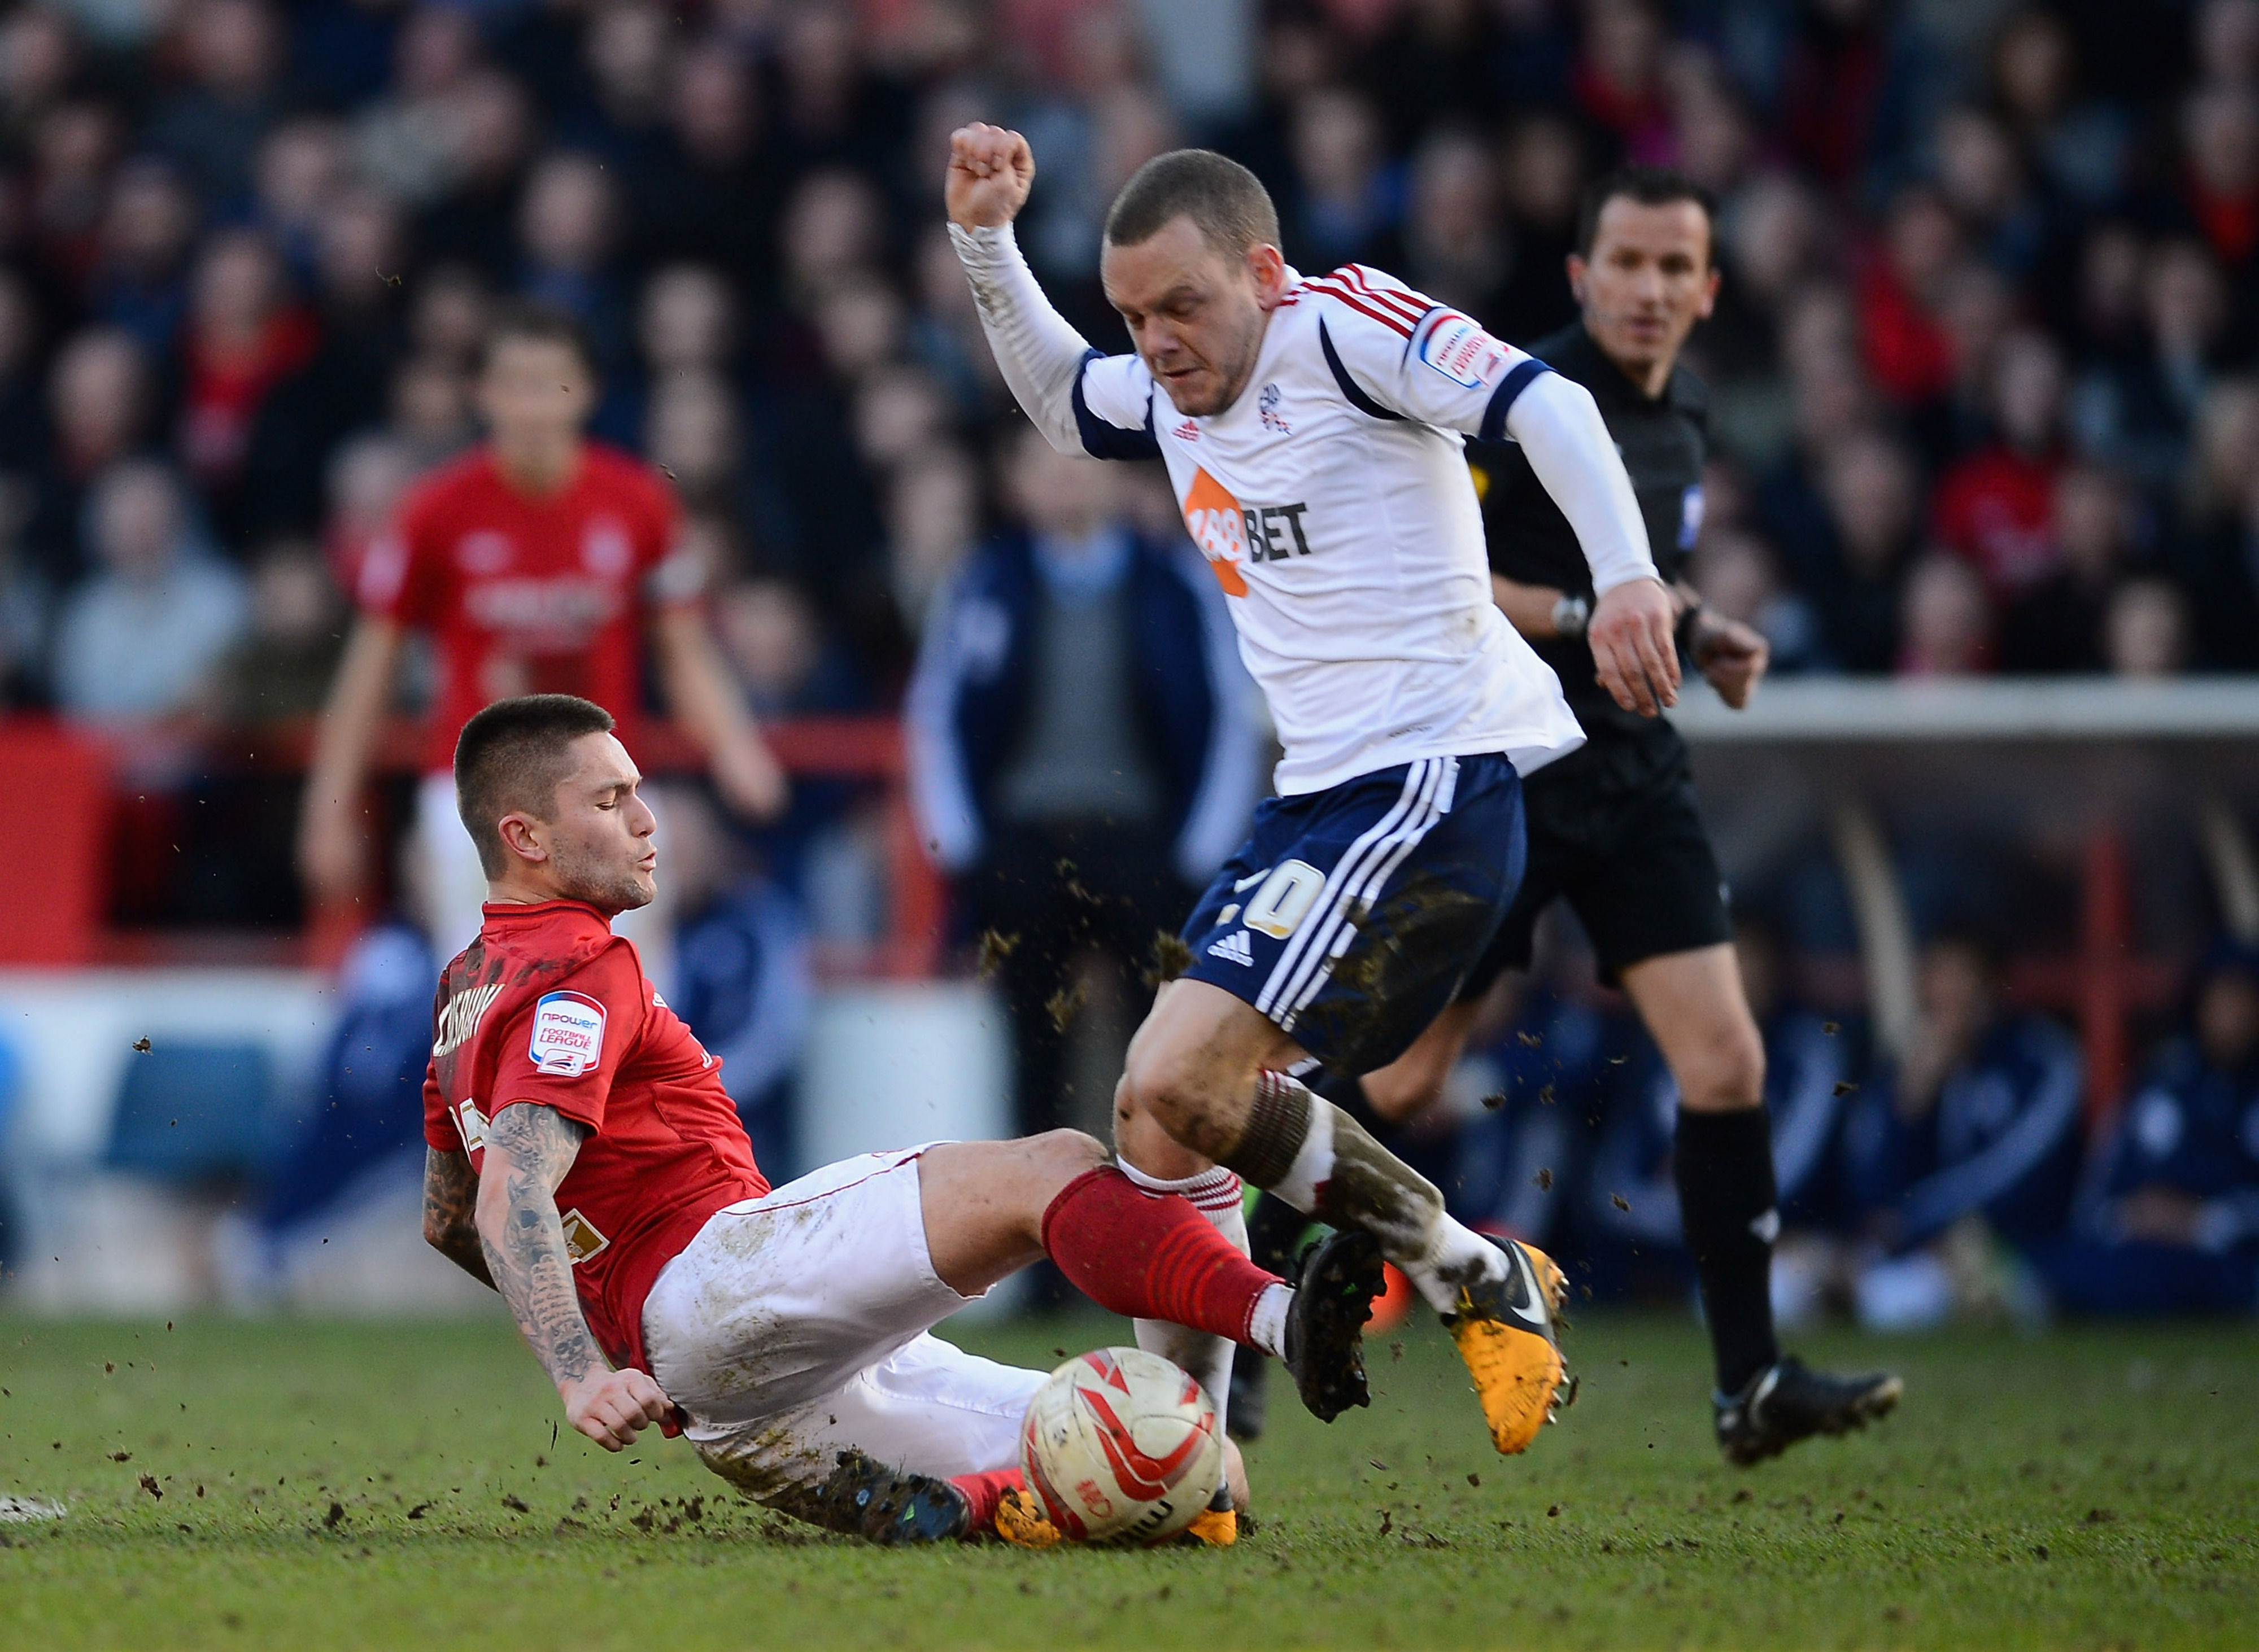 We usually don't think of Jay Spearing as having golden boots...